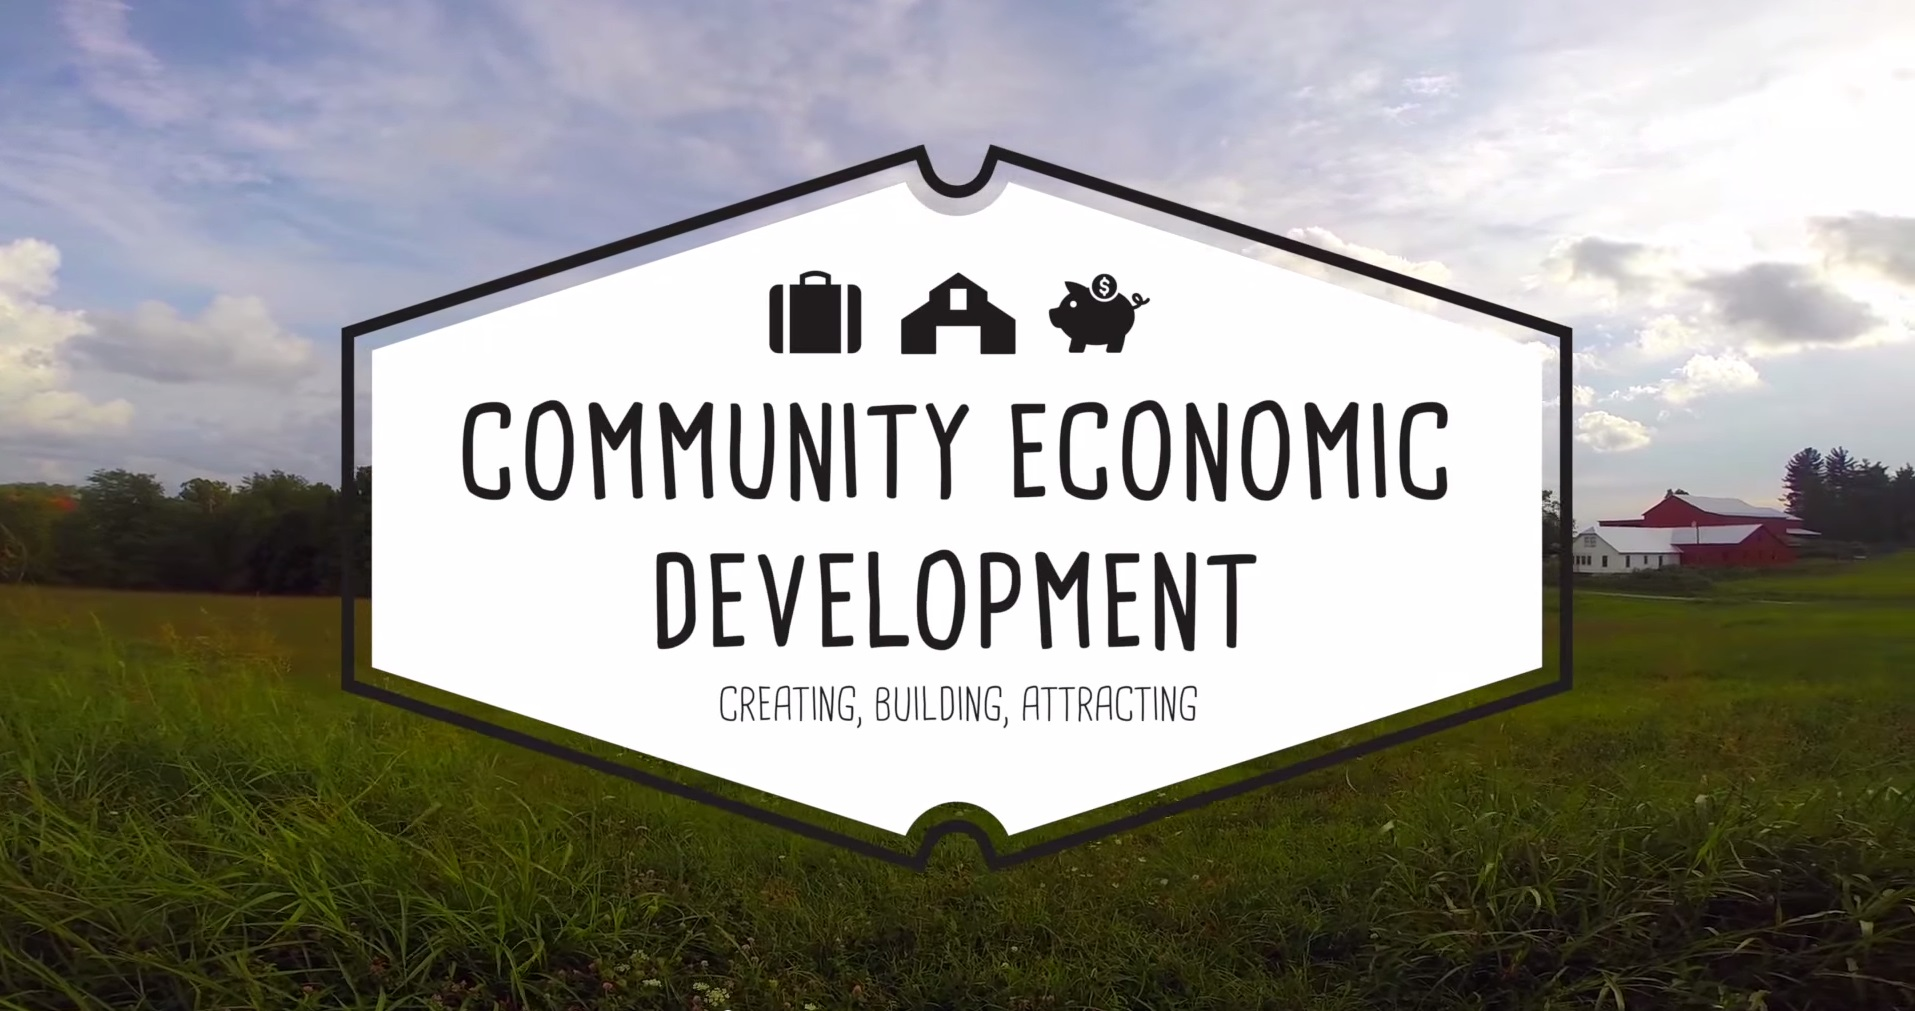 Community economic development creates jobs and entrepreneurship opportunities, builds individual and community wealth and attracts capital to disinvested communities .